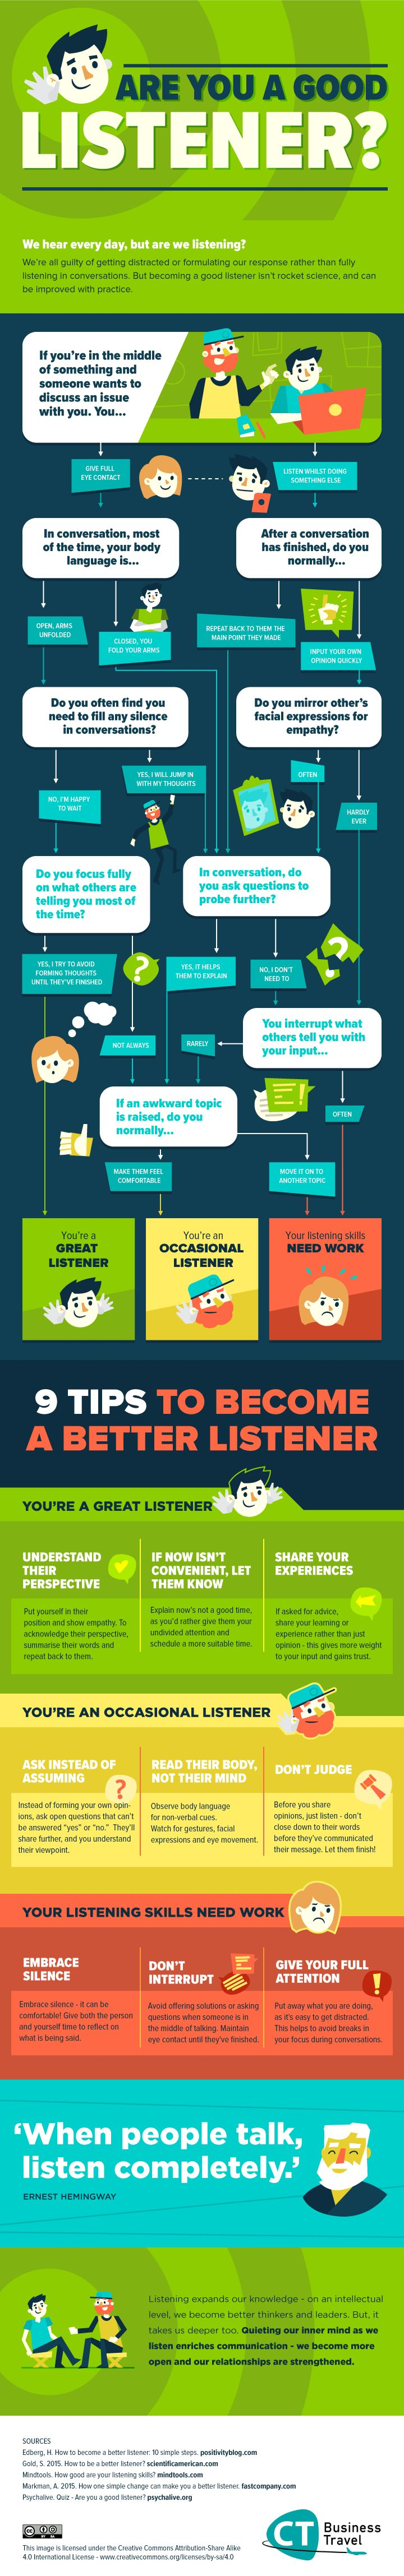 Are You a Good Listener? Tips to Become Better - Infographic